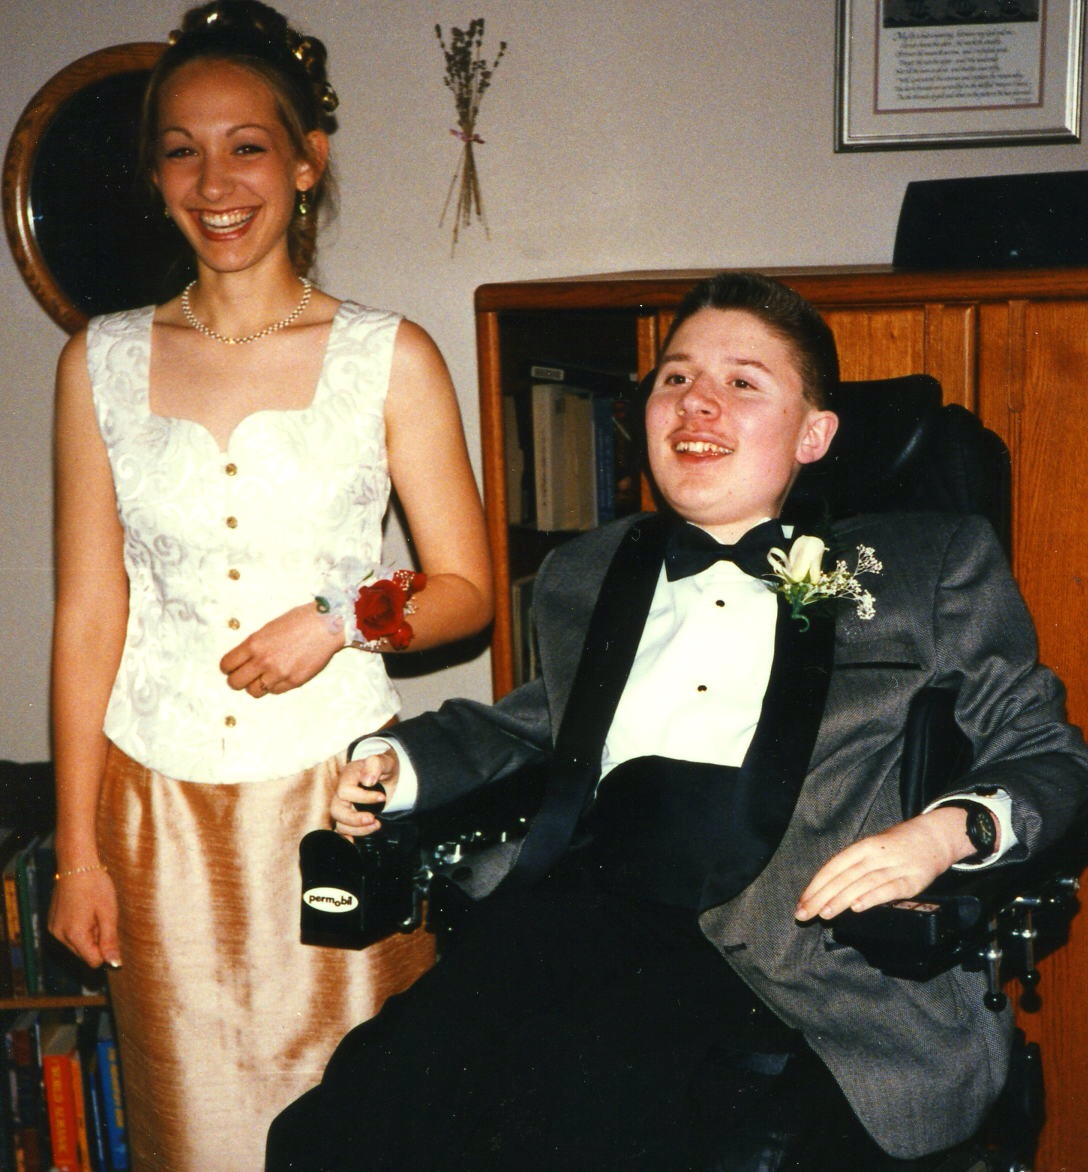 Ben and Angela, prom night, 1996.